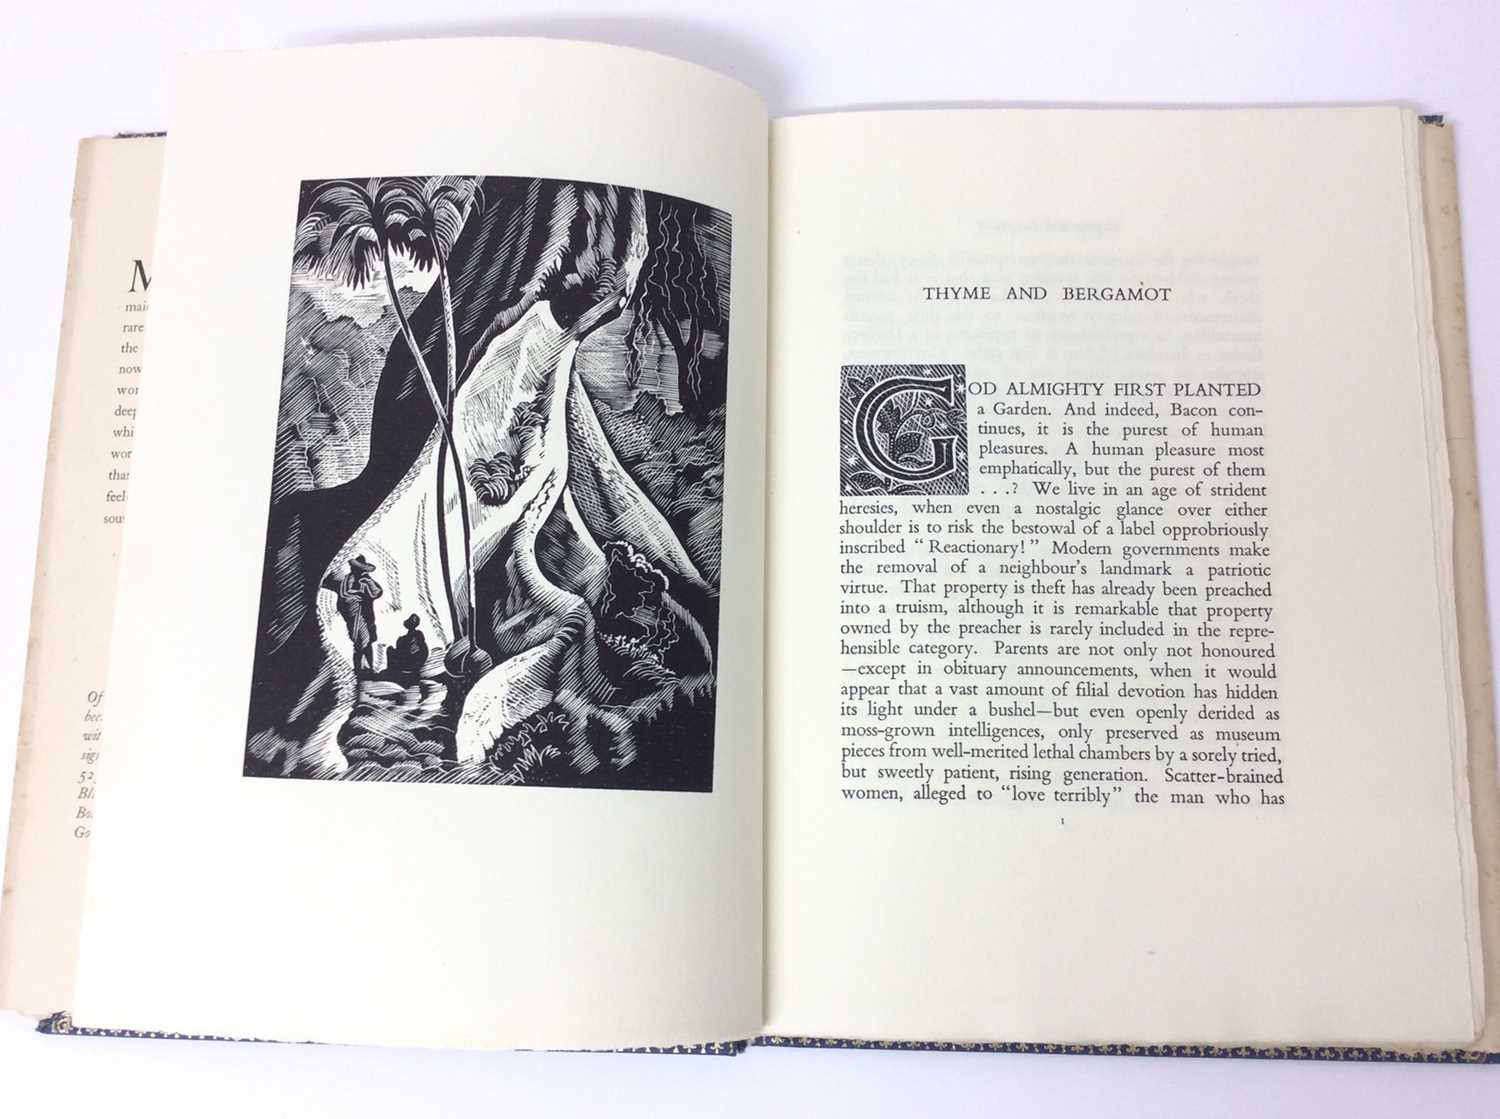 Christopher Sandeman - Thyme and Bergamot, illustrated by John O'Connor, Dropmore Press, 1947, numbe - Image 7 of 10